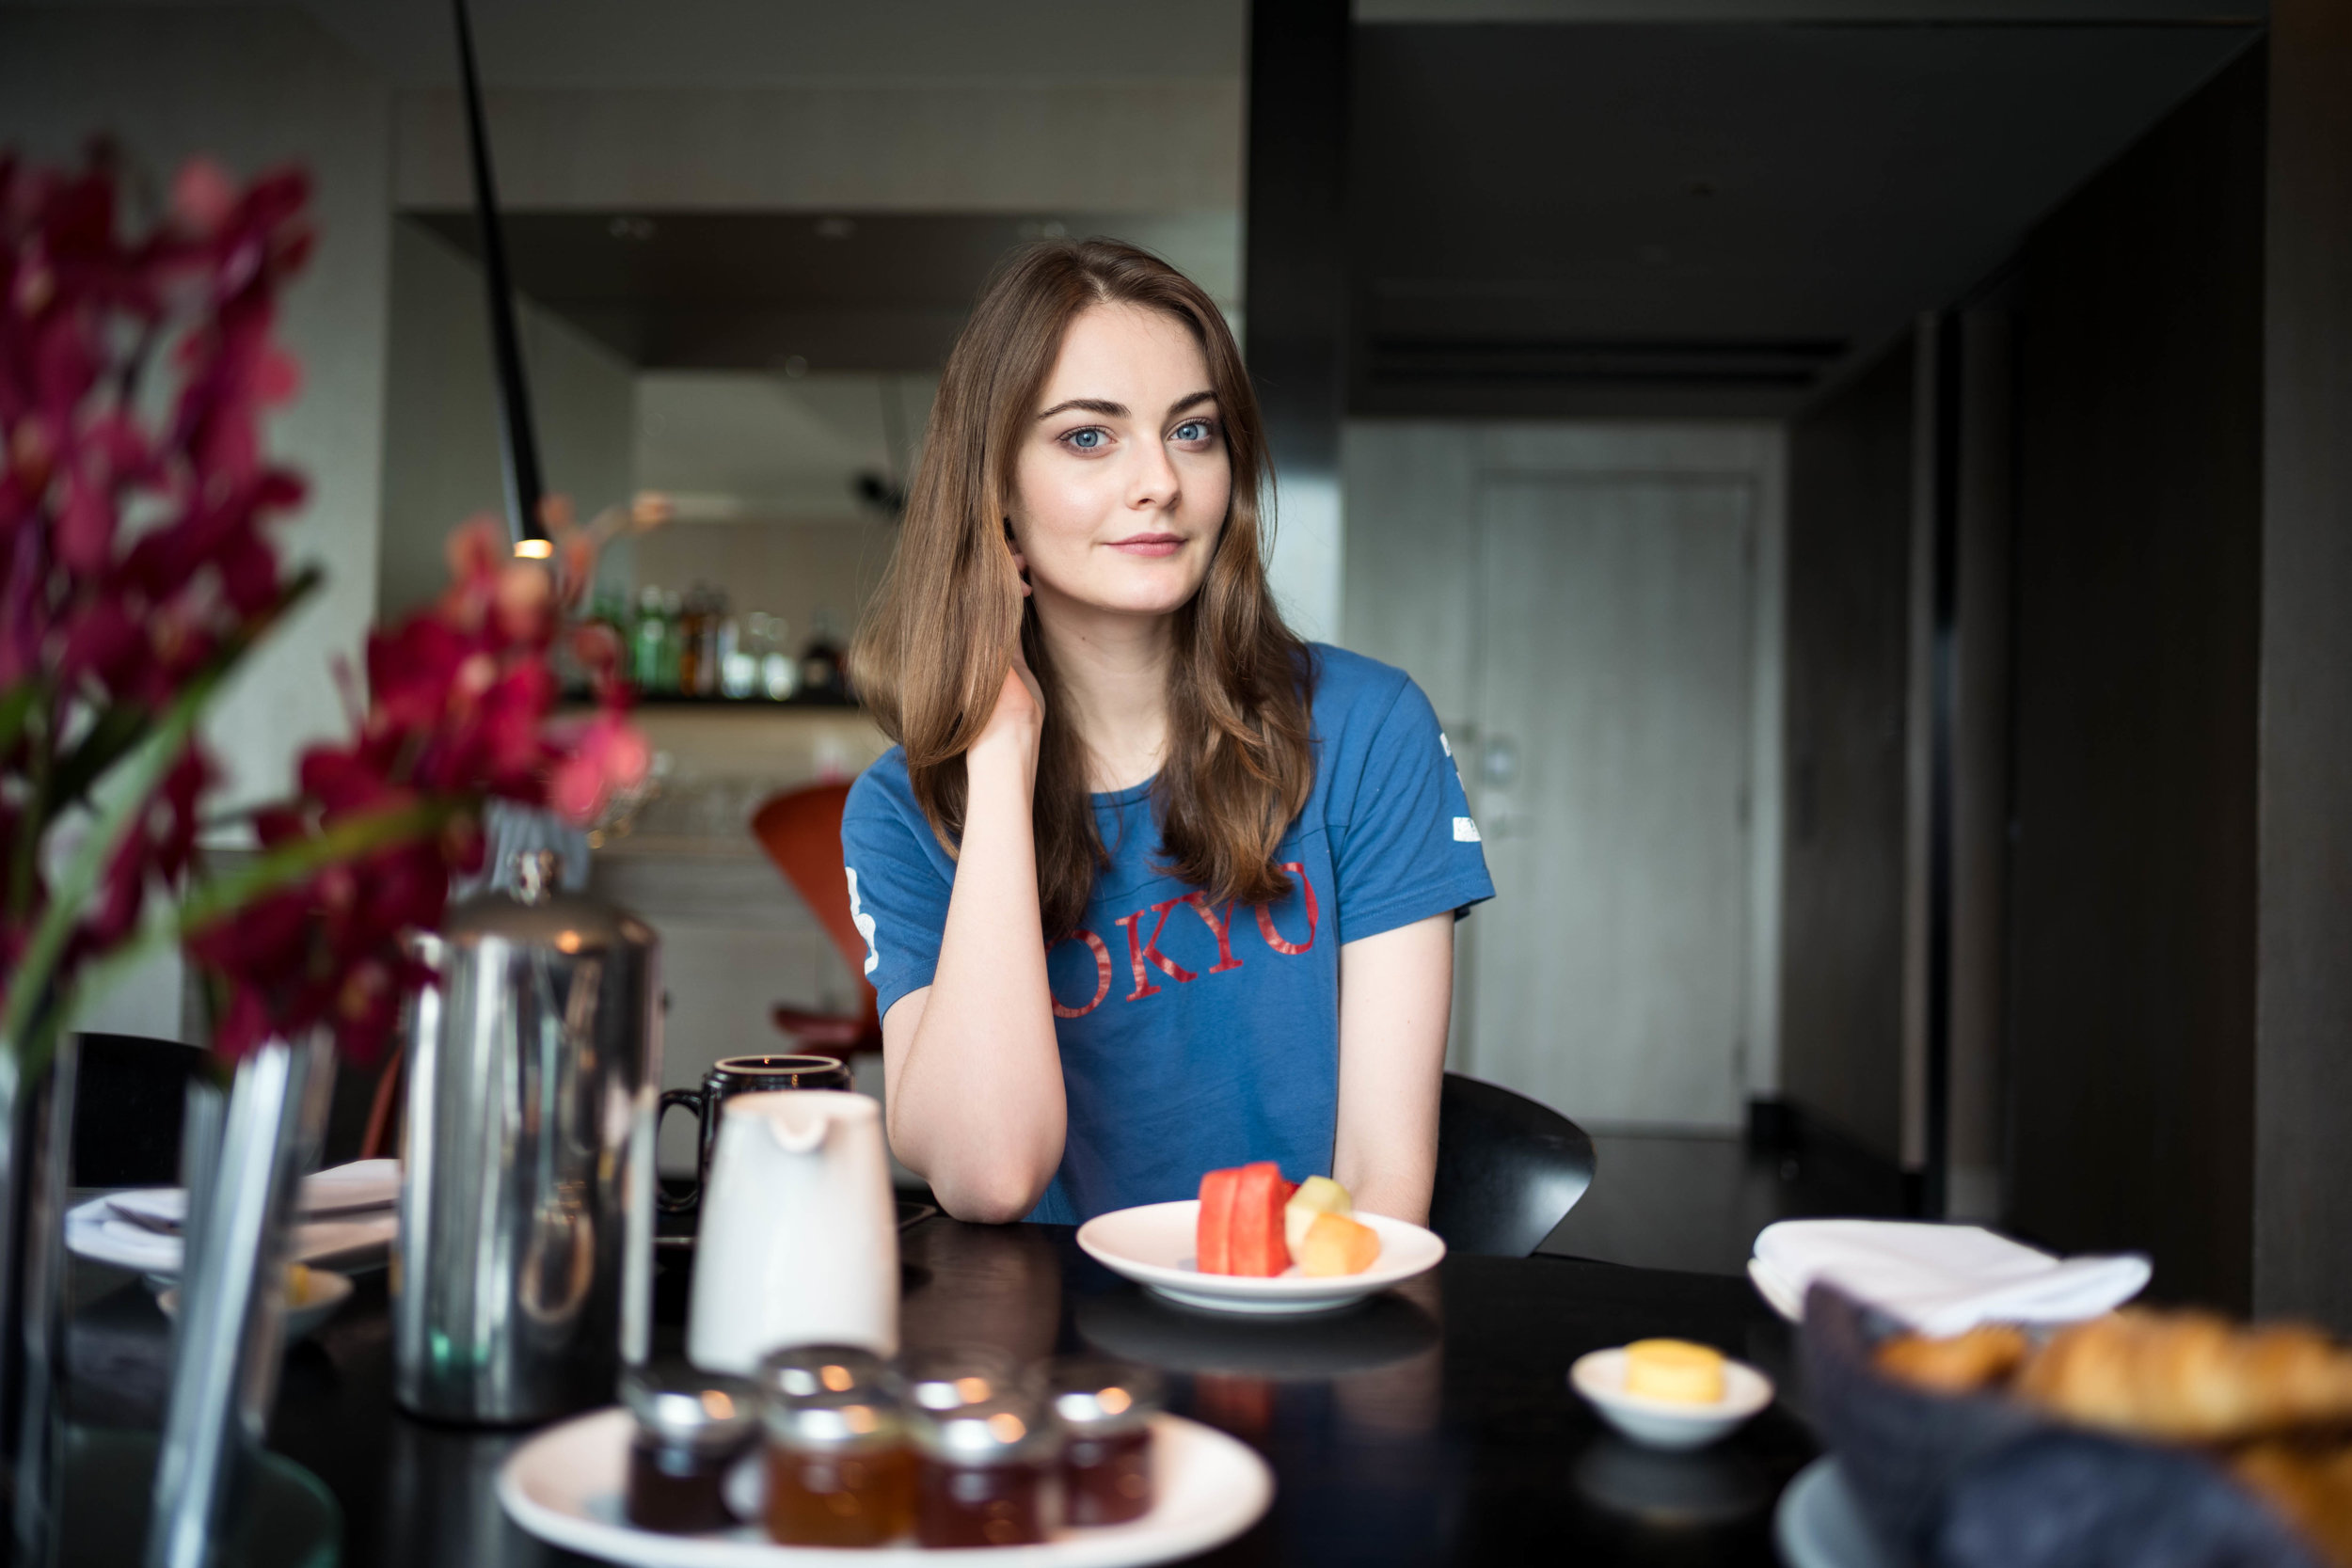 Breakfast with Anna. My recurring subject. This shoot was originally part of my Leica SL with fast lens test. But I figure that I'd rather use it for this write up. Leica 28mm f/1.4 Summilux